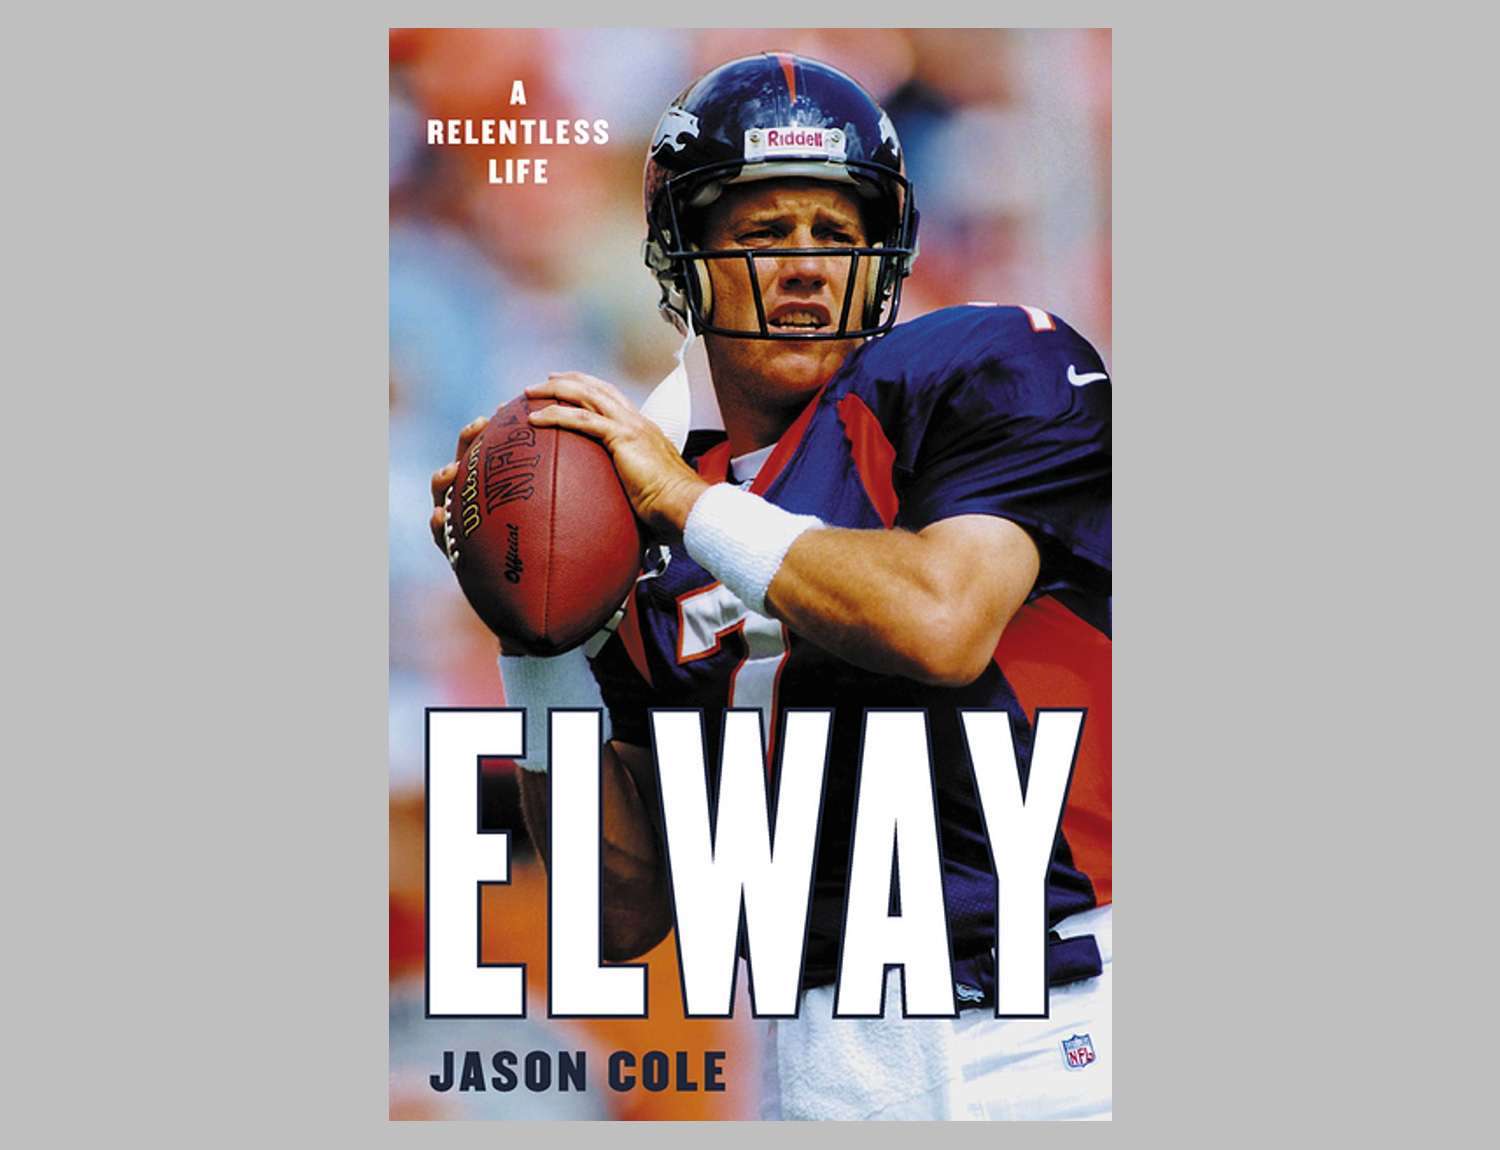 Elway: A Relentless Life at werd.com